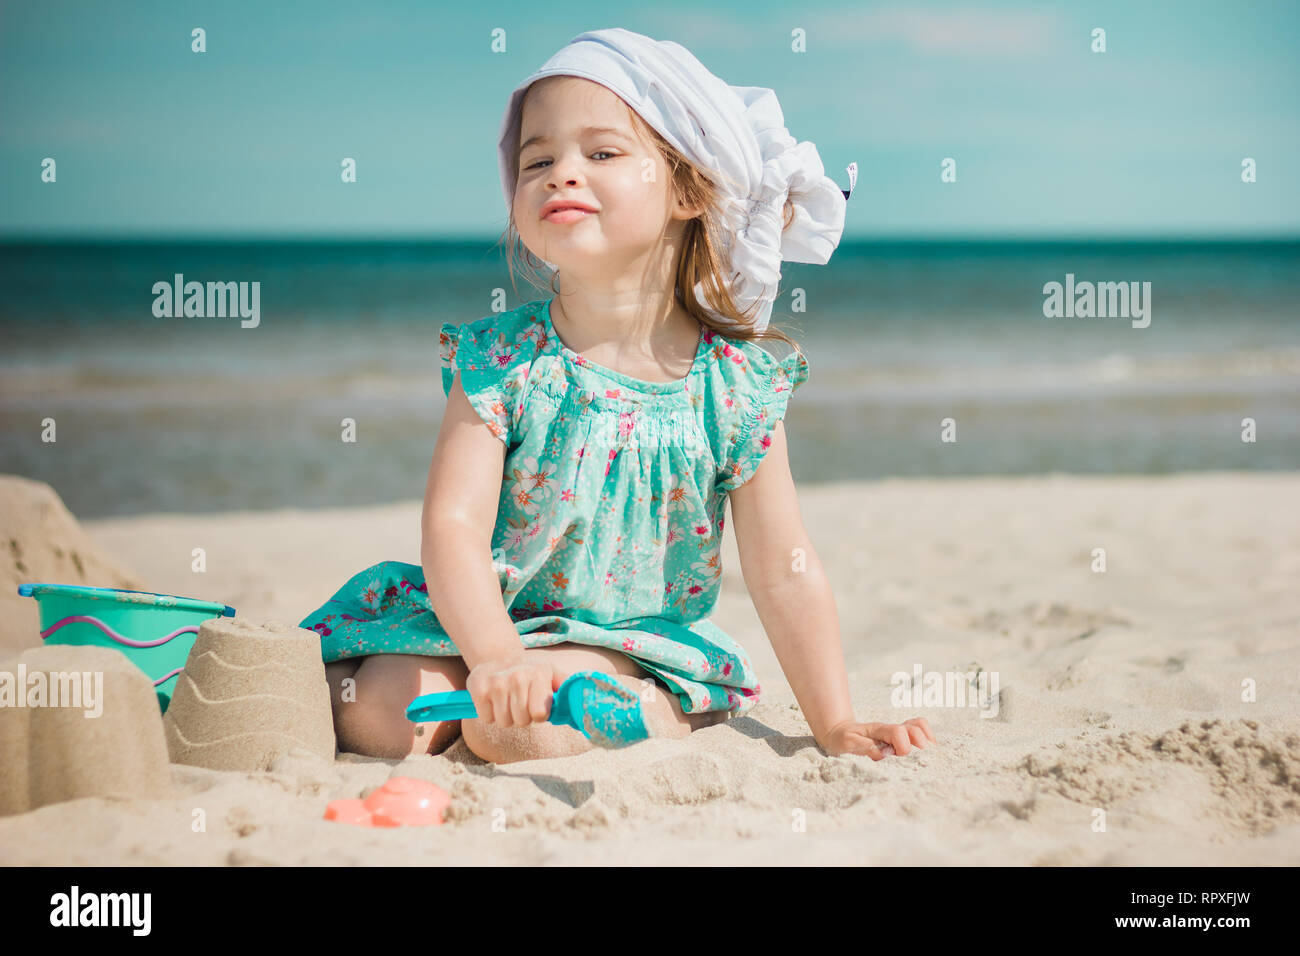 Young girl in sundress making sandcastles on sunny beach. Stock Photo